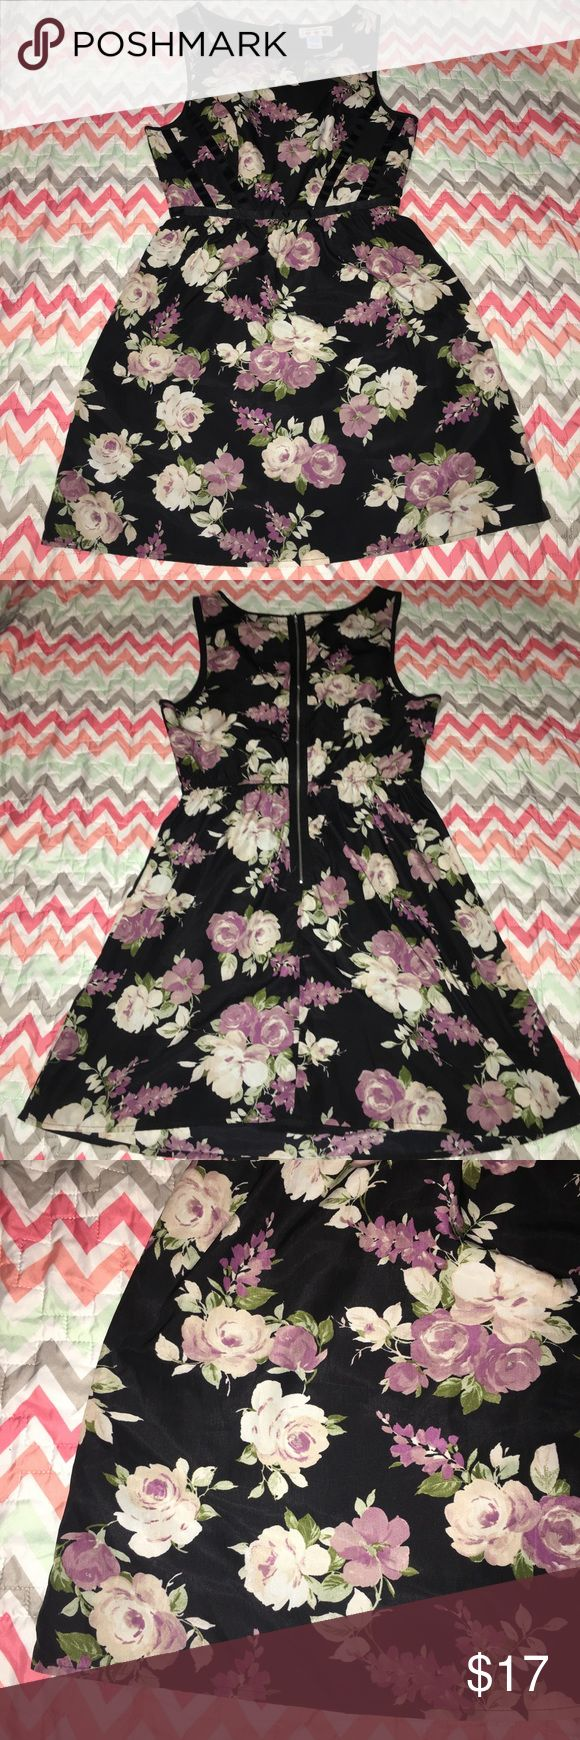 Three Pink Hearts Floral Boat Neck Dress - Size 7 PRICE is negotiable, unless otherwise stated.   Details: super cute eye catching dress. Full zipper back, unique back strap design down front boat neck Tank style. Very cute sundress double layer  ••COLOR: black/PINK  Size: 7  Brand: Three Pink Hearts   Condition: Like New   #CksOverload #ShopNow #Share #Follow #ISO #InstaShop #ForSale #NOTRADE #LookingFor  ••I do NOT TRADE••  Used items may contain piling &/or signs of wash and wear, they…